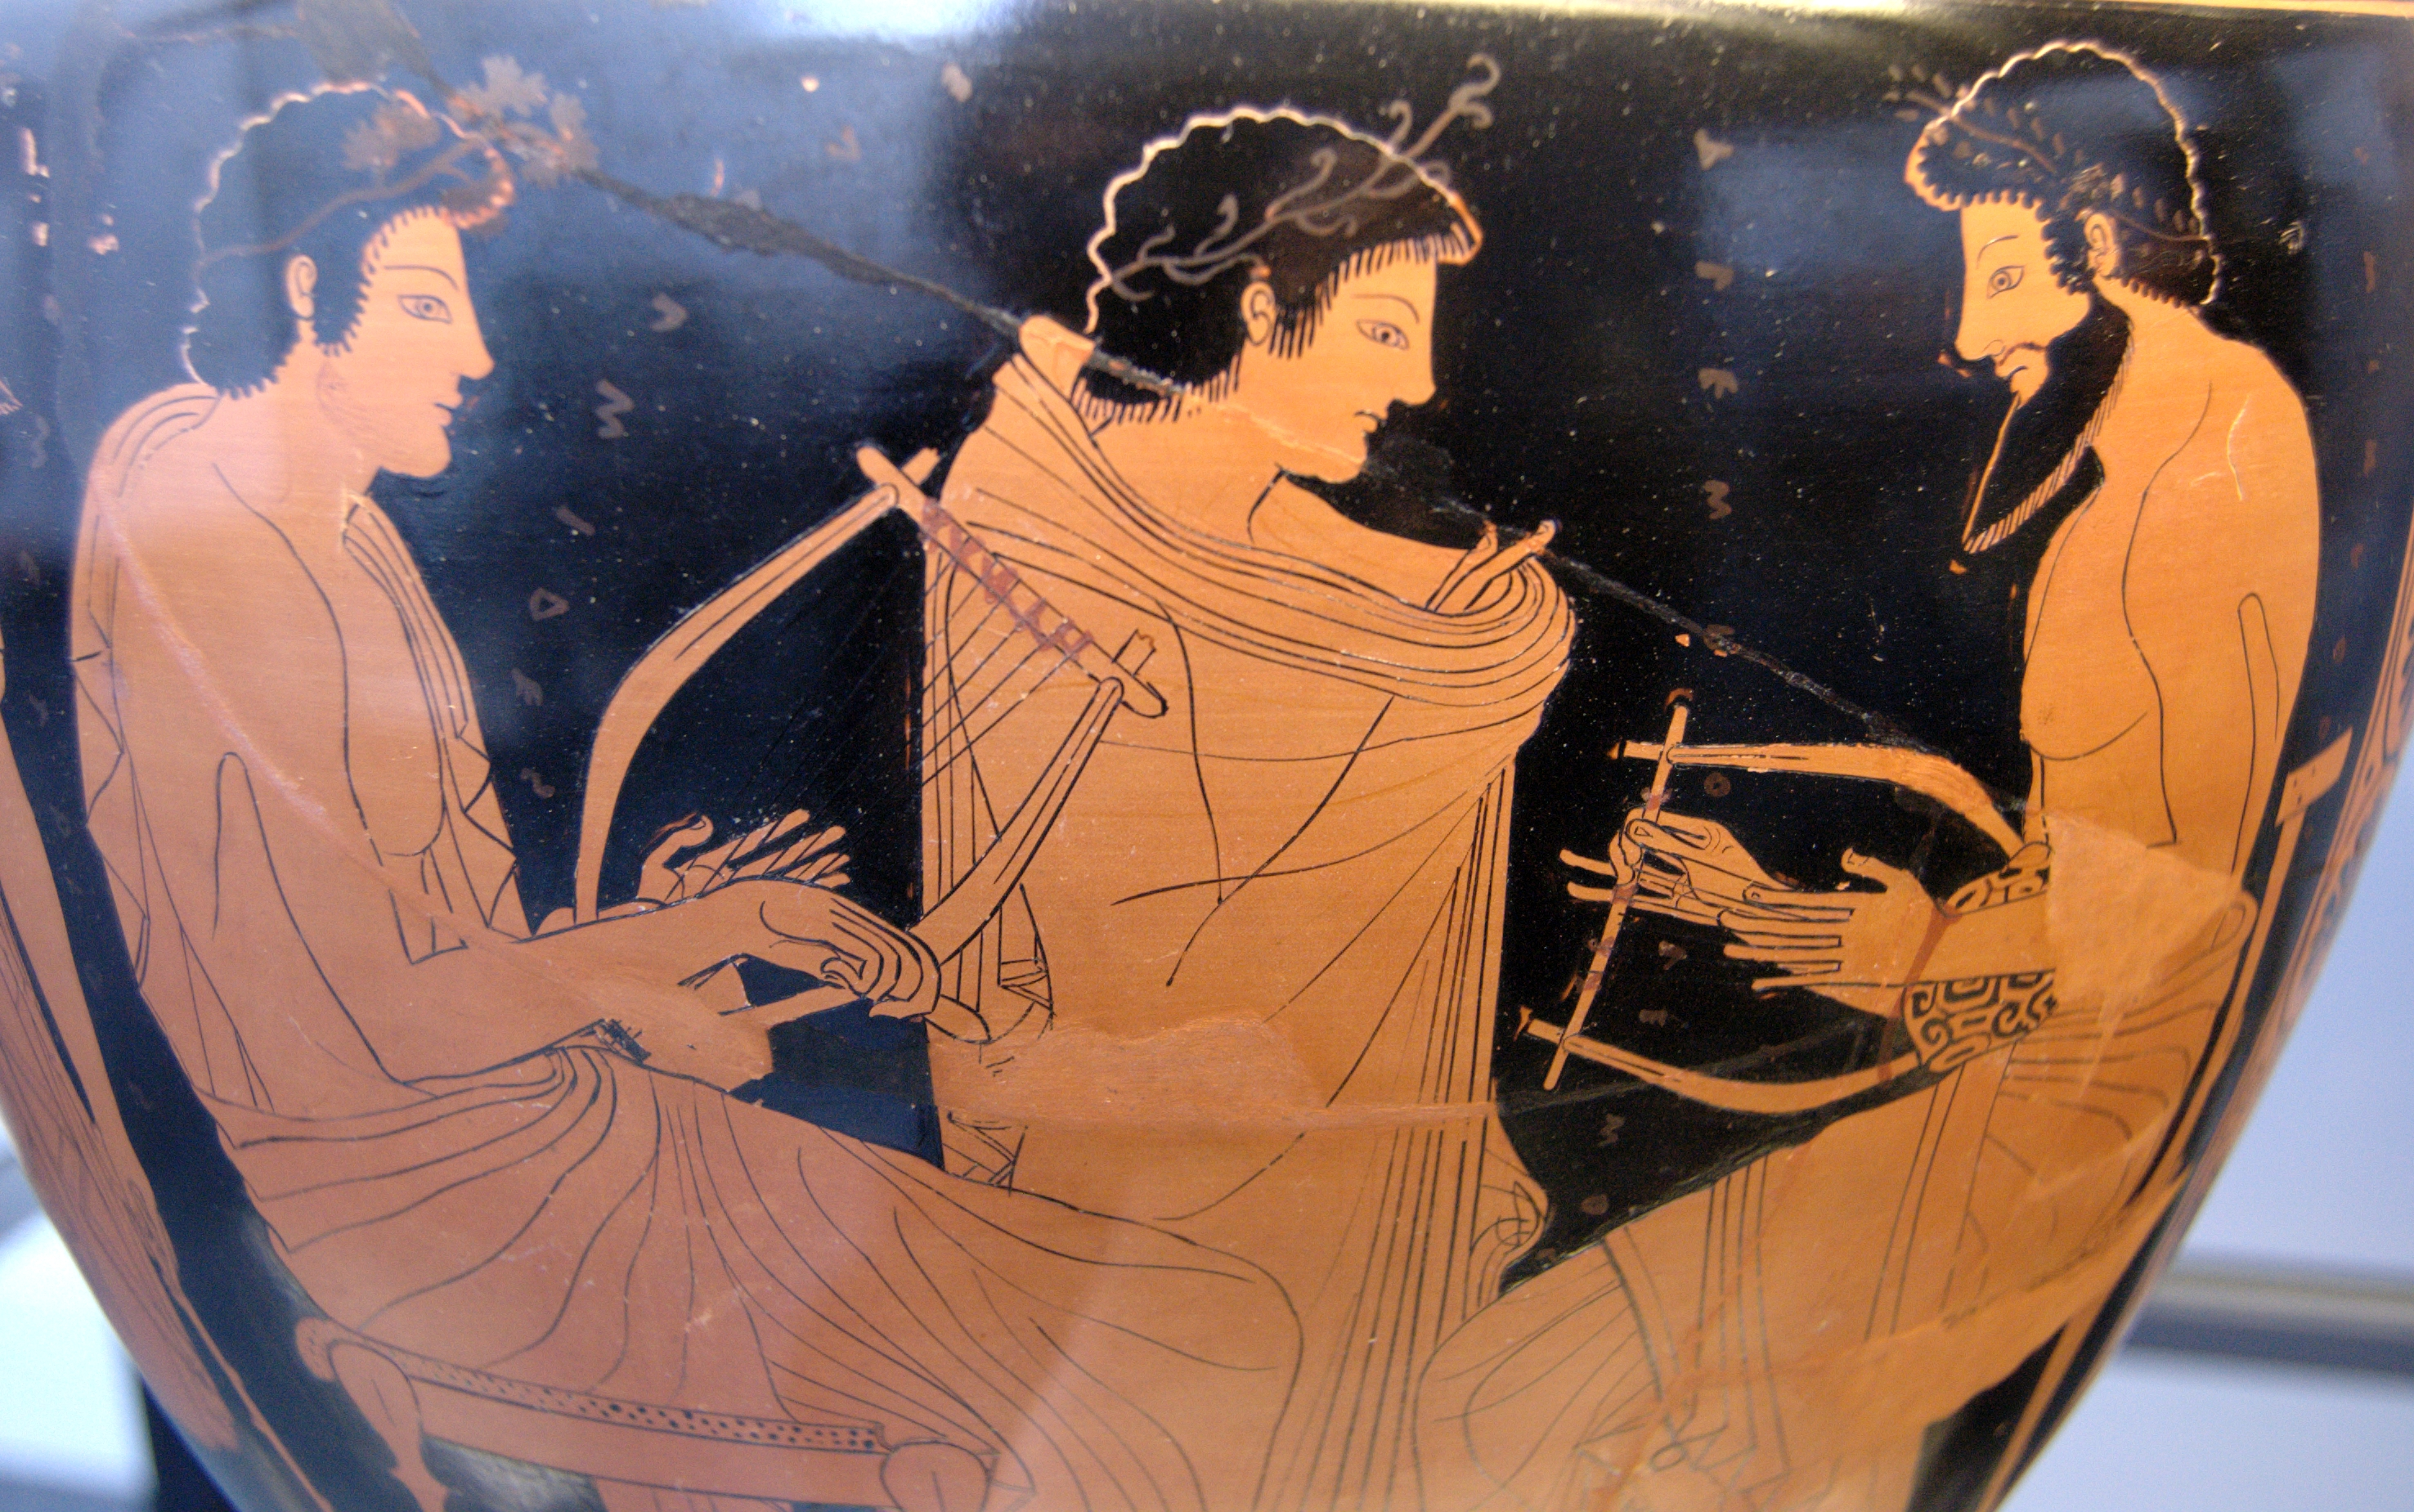 drawing of roman musicians on pottery